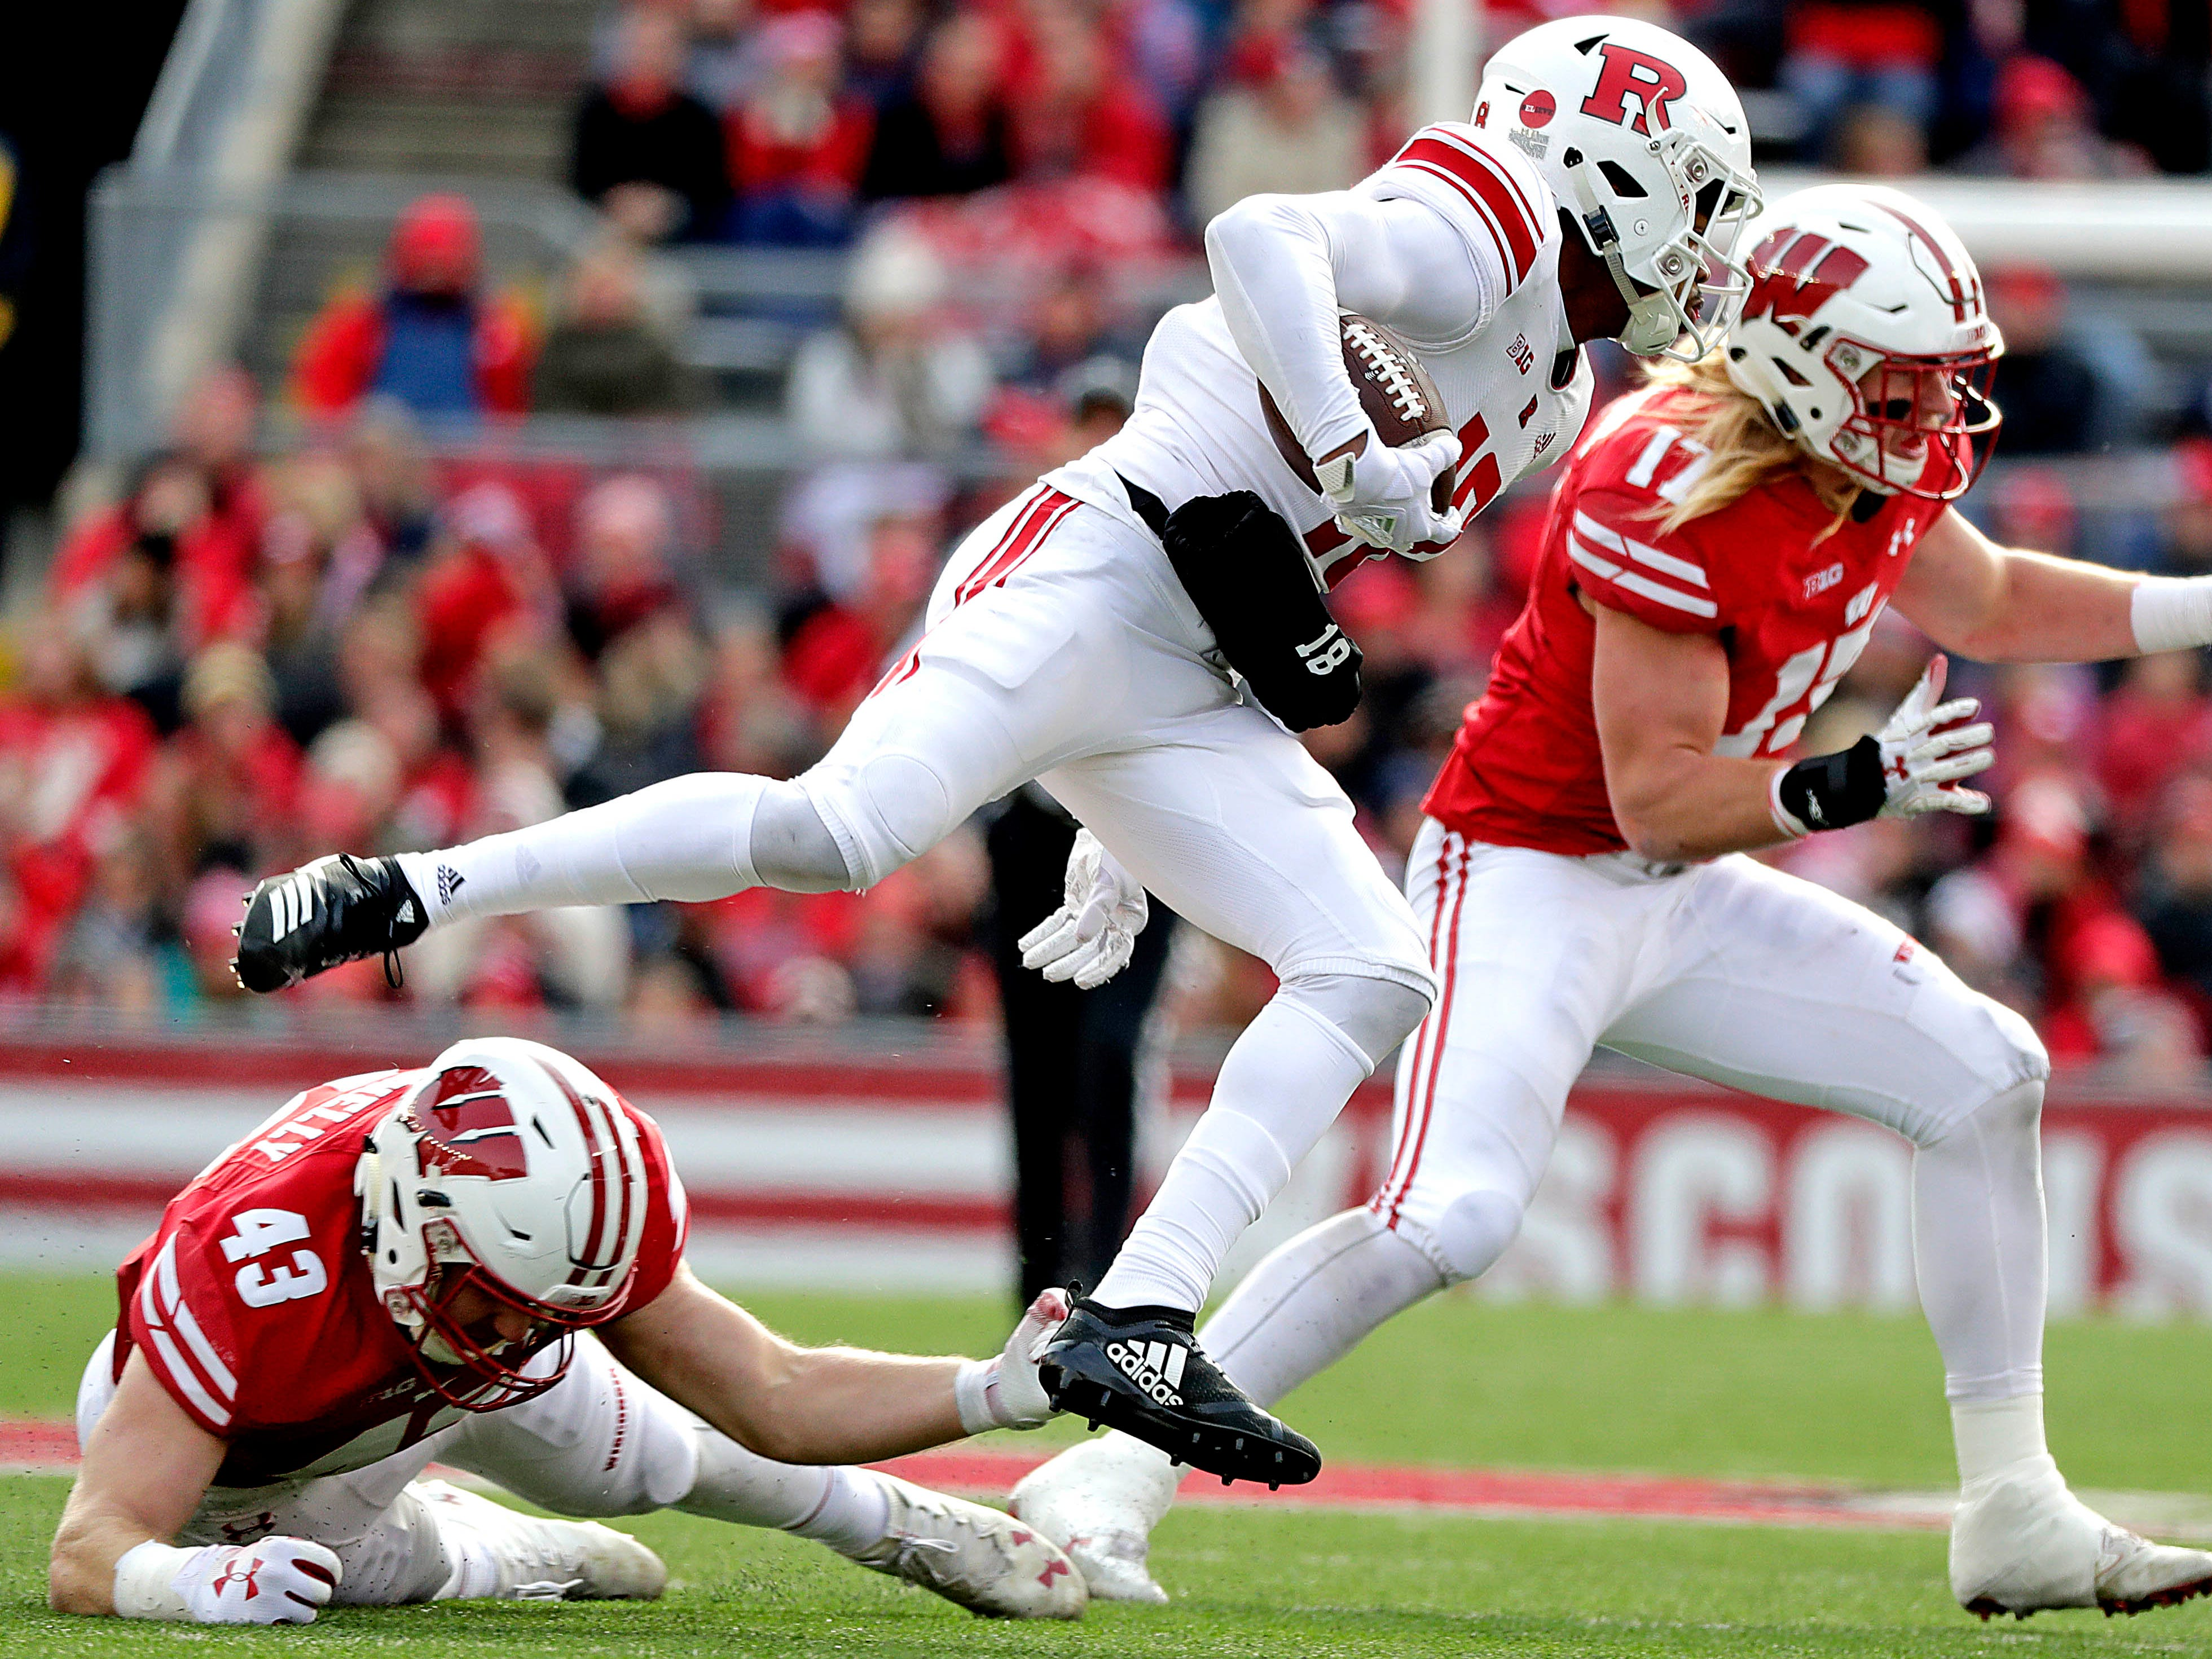 UW linebacker Ryan Connelly (43) trips up Scarlet Knights wide receiver Bo Melton on Saturday.